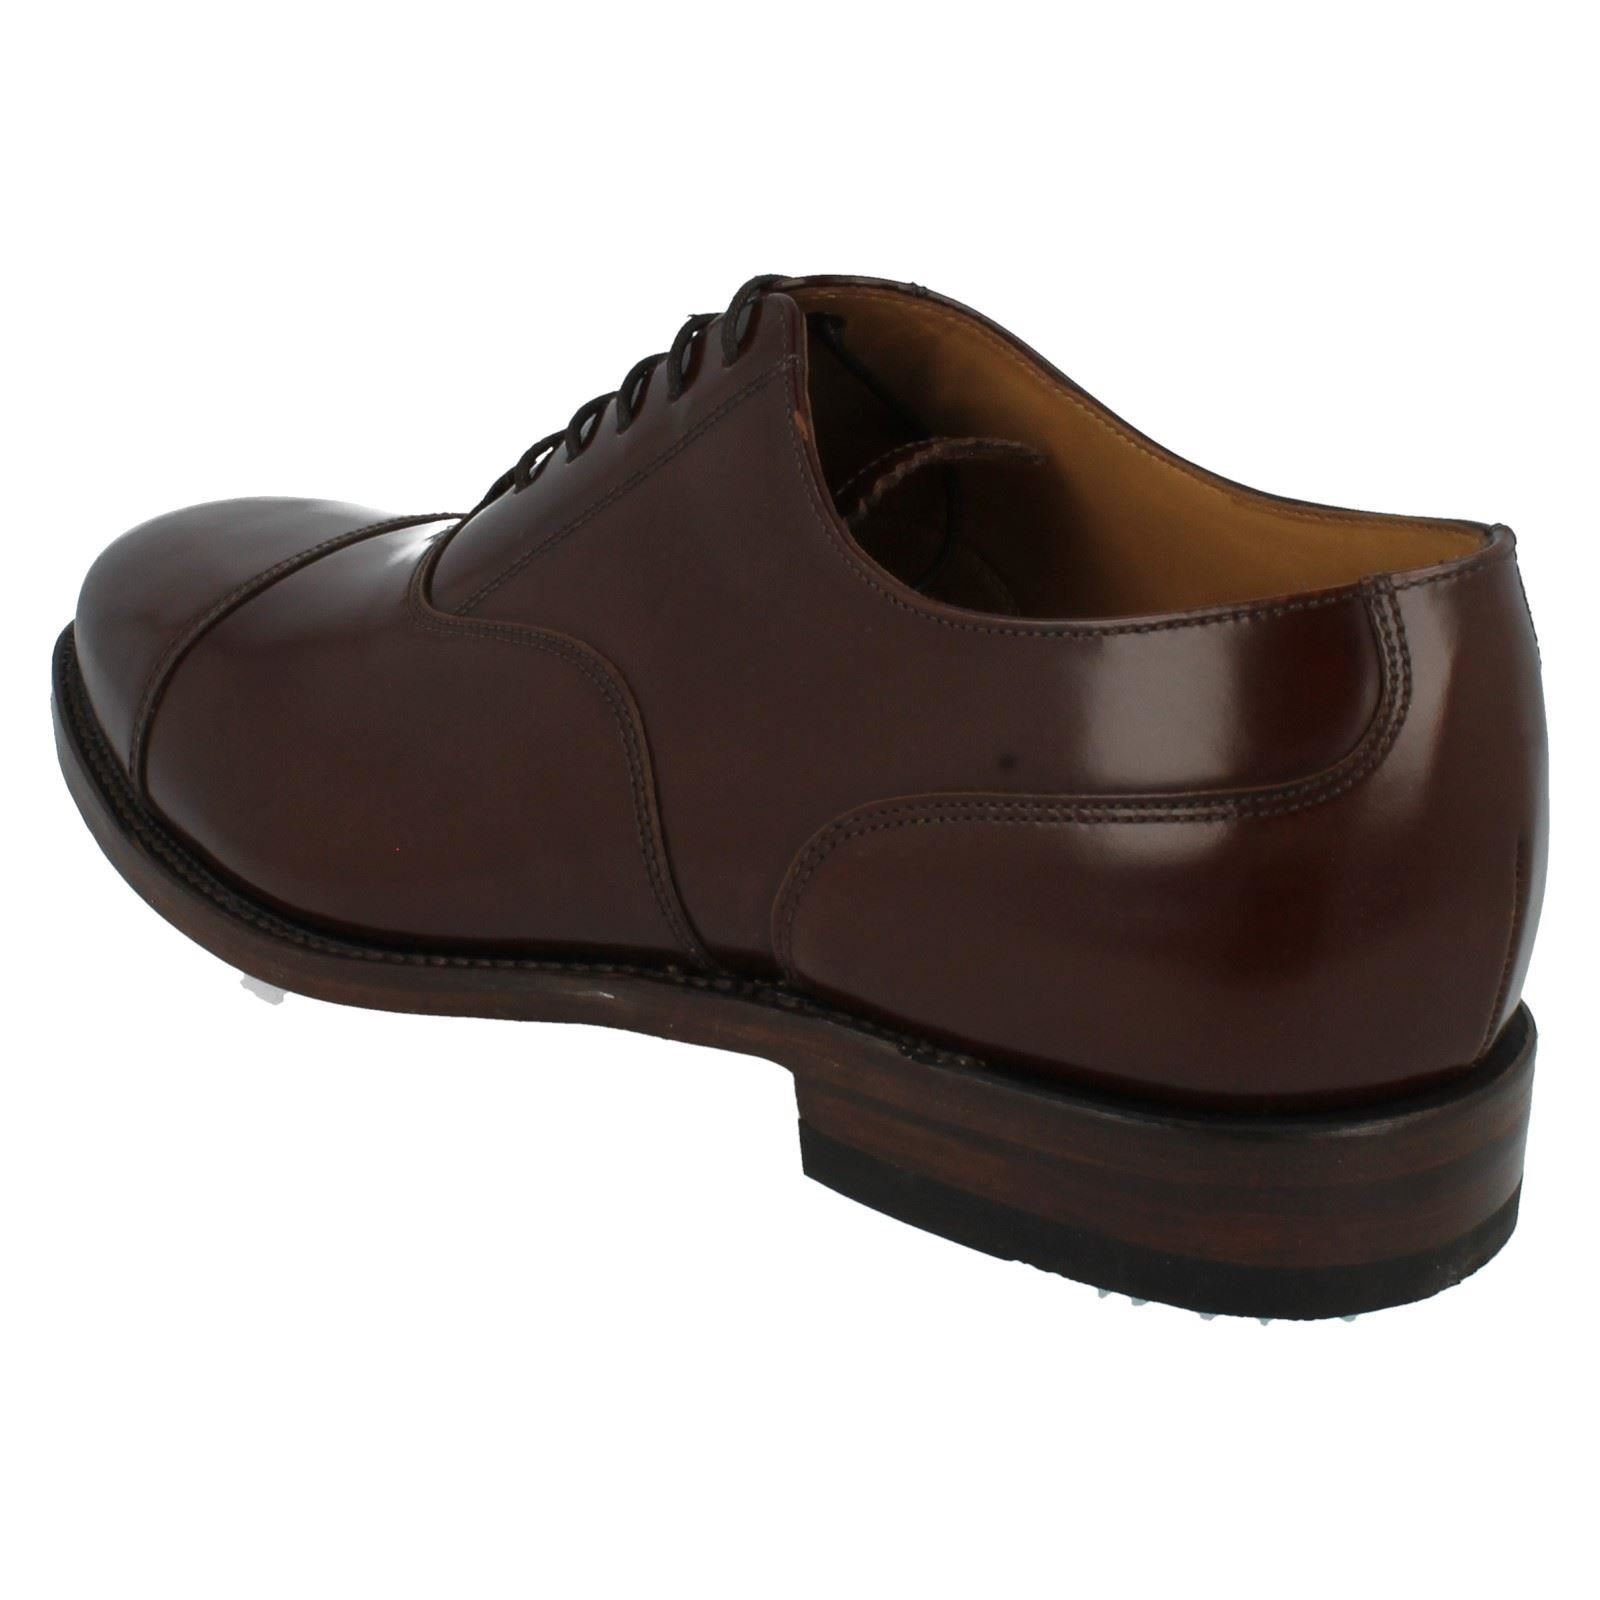 Herren Loake Fitting Formal Schuhes Fitting Loake G Style - 200 - 050818